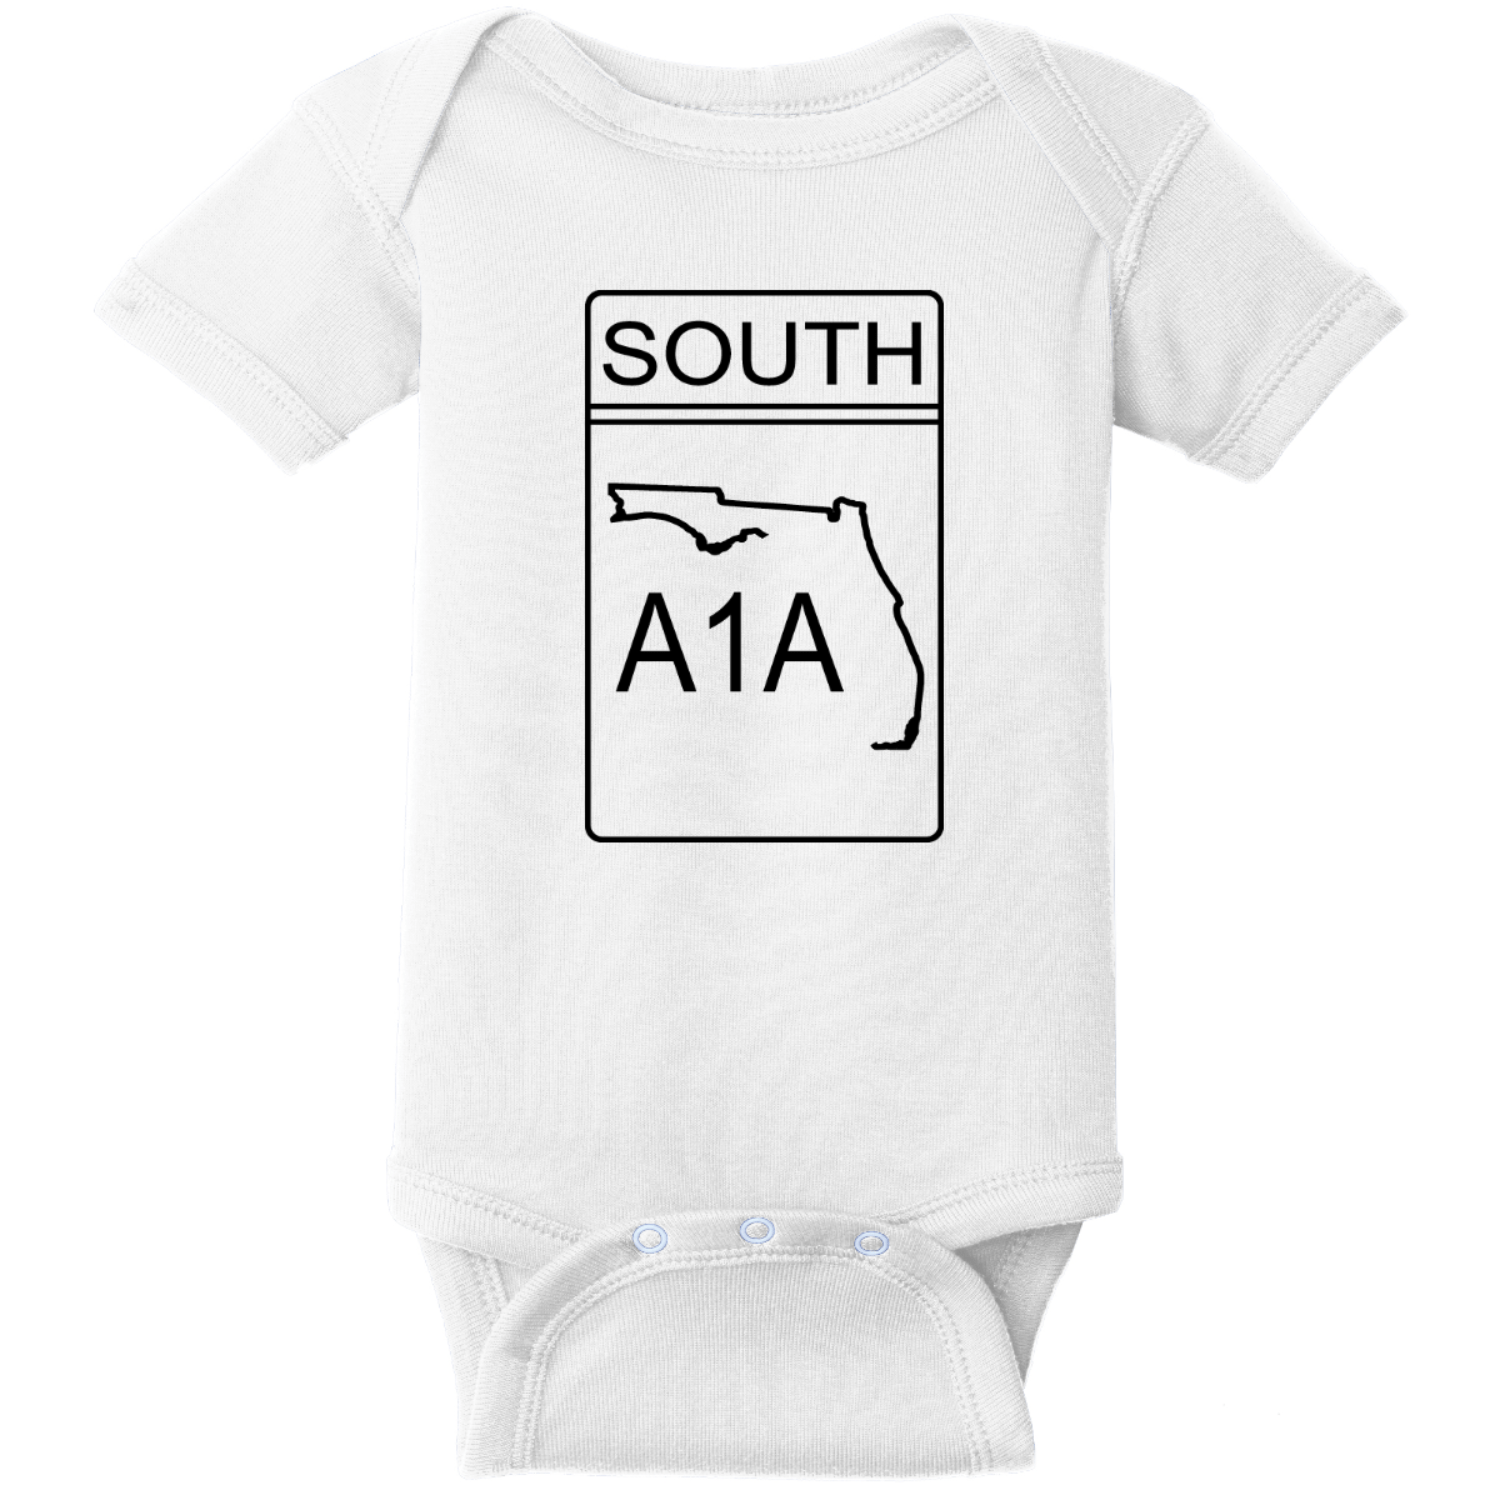 A1A South Road Sign Baby Creeper White Rabbit Skins Infant Short Sleeve Infant Rib Bodysuit RS4400